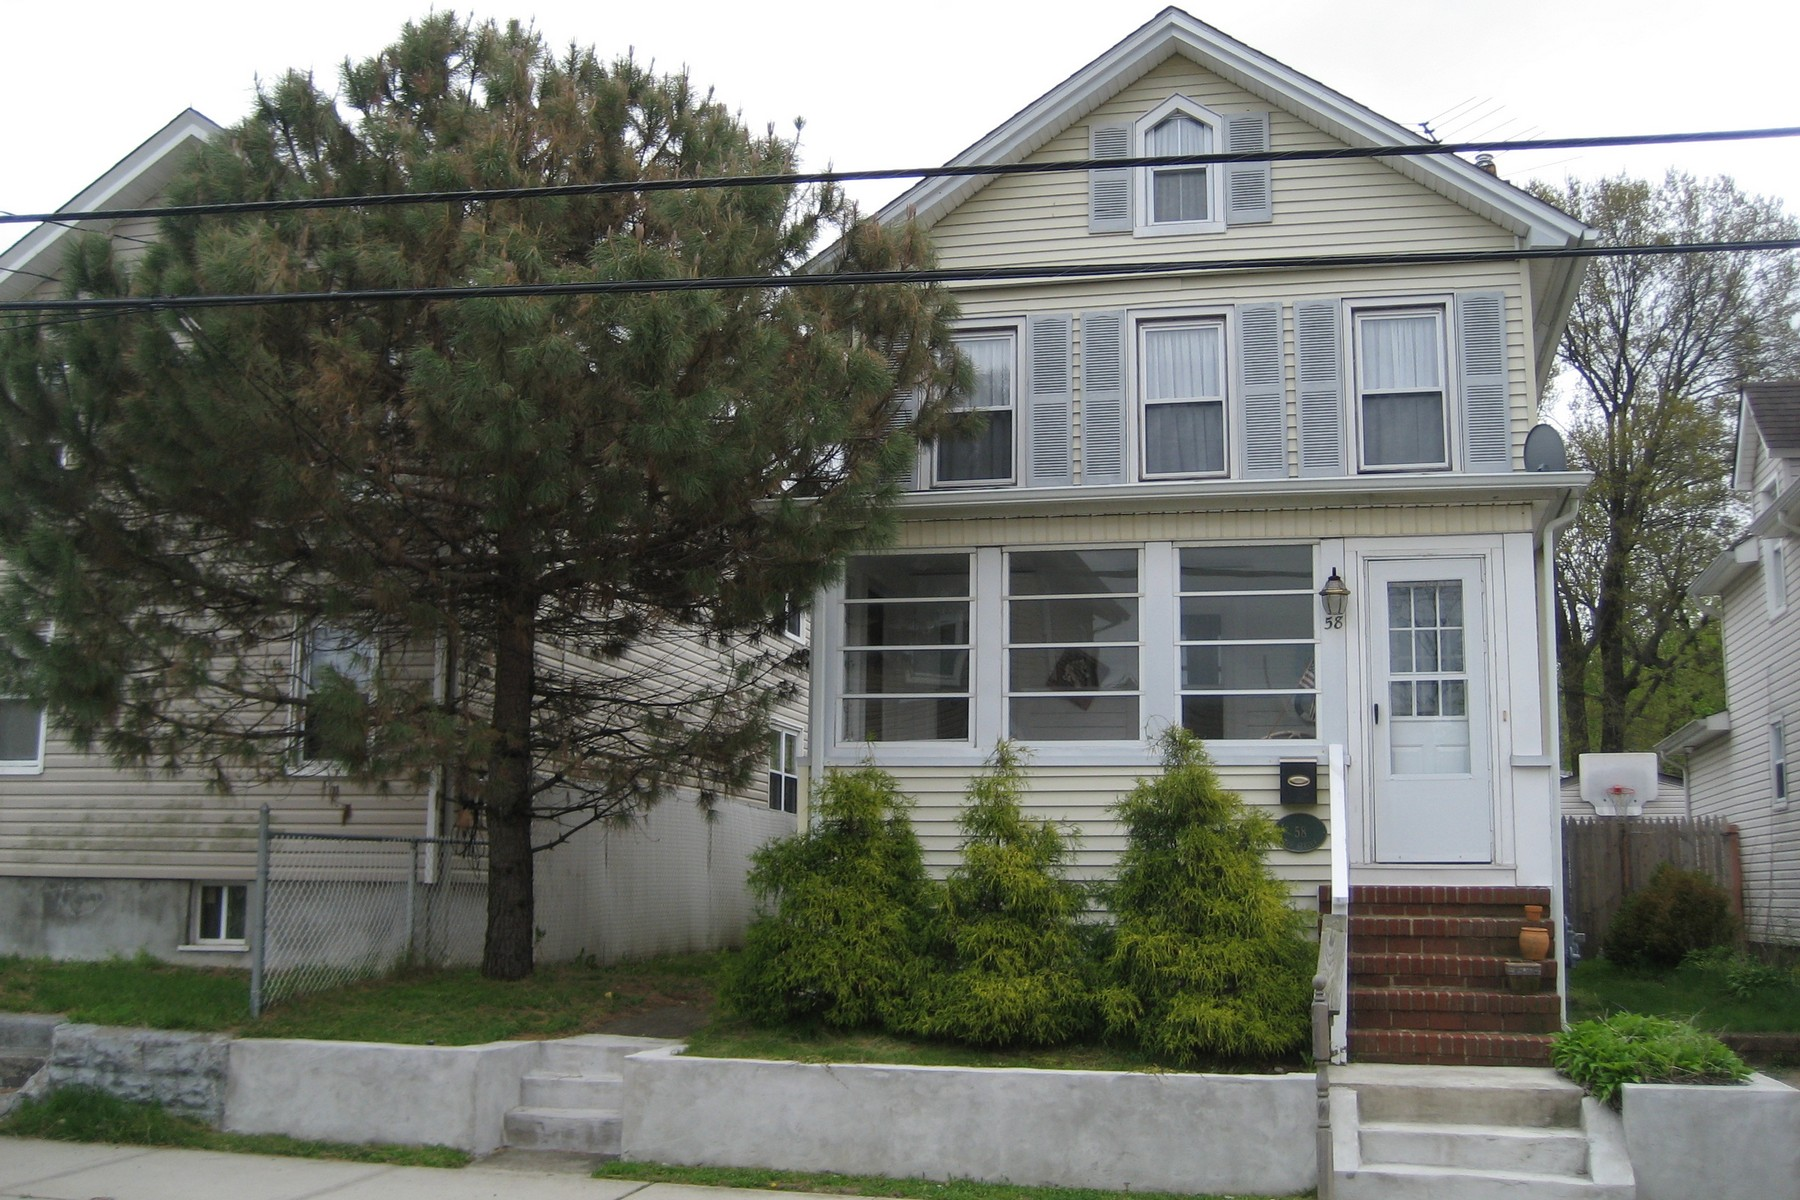 Single Family Home for Sale at Beautiful Restored Seashore Colonial 58 3rd St. Keyport, New Jersey 07735 United States